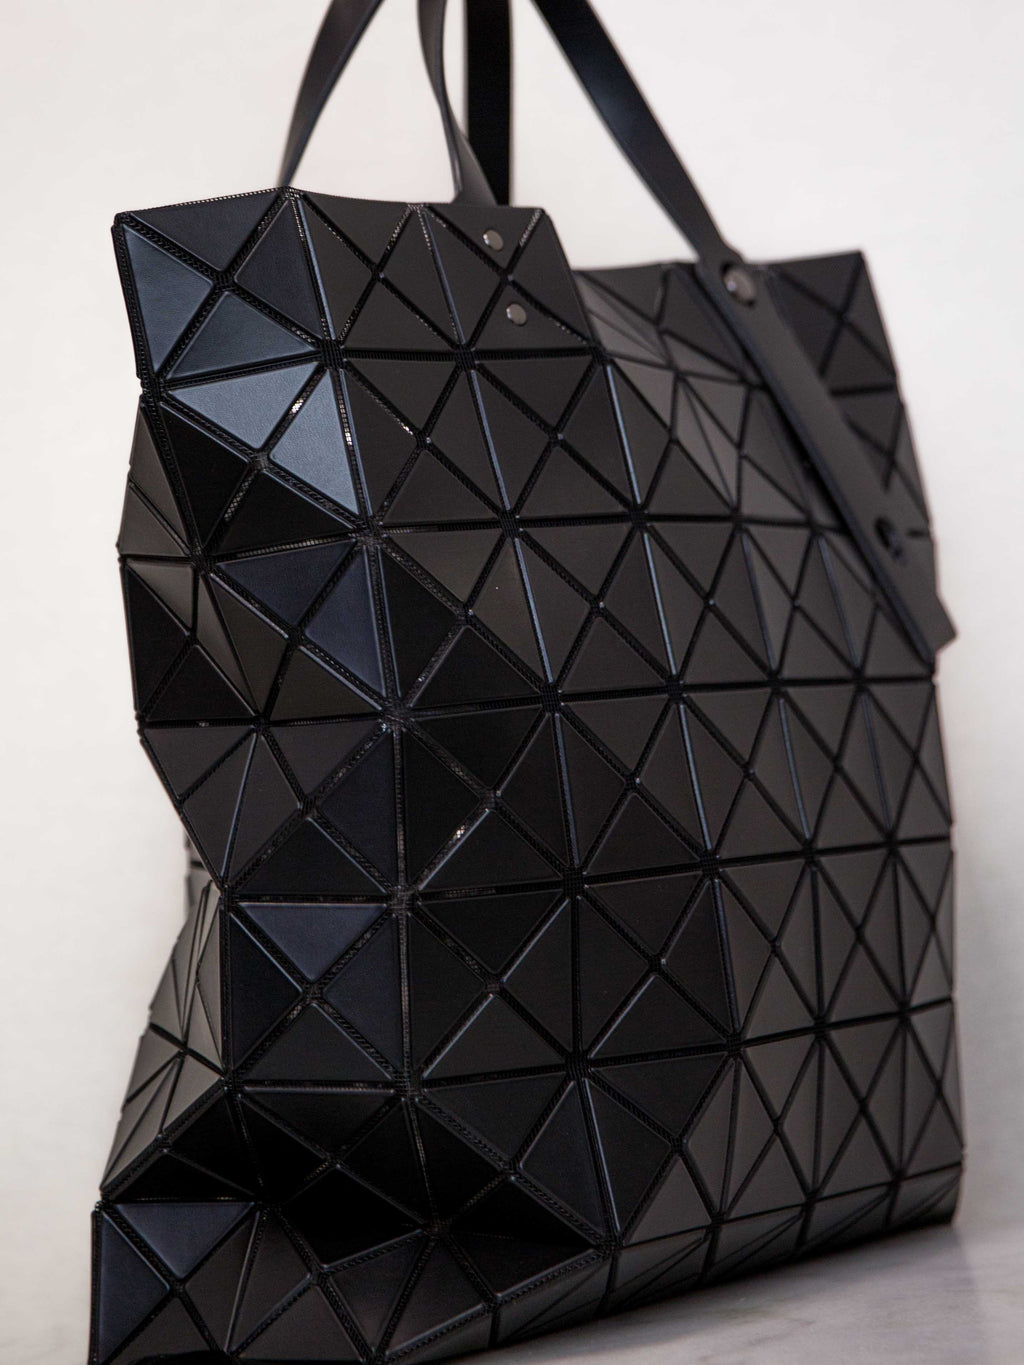 343a1c62fa5b ... BAO BAO ISSEY MIYAKE Lucent Matte Oversized Tote Bag - Black